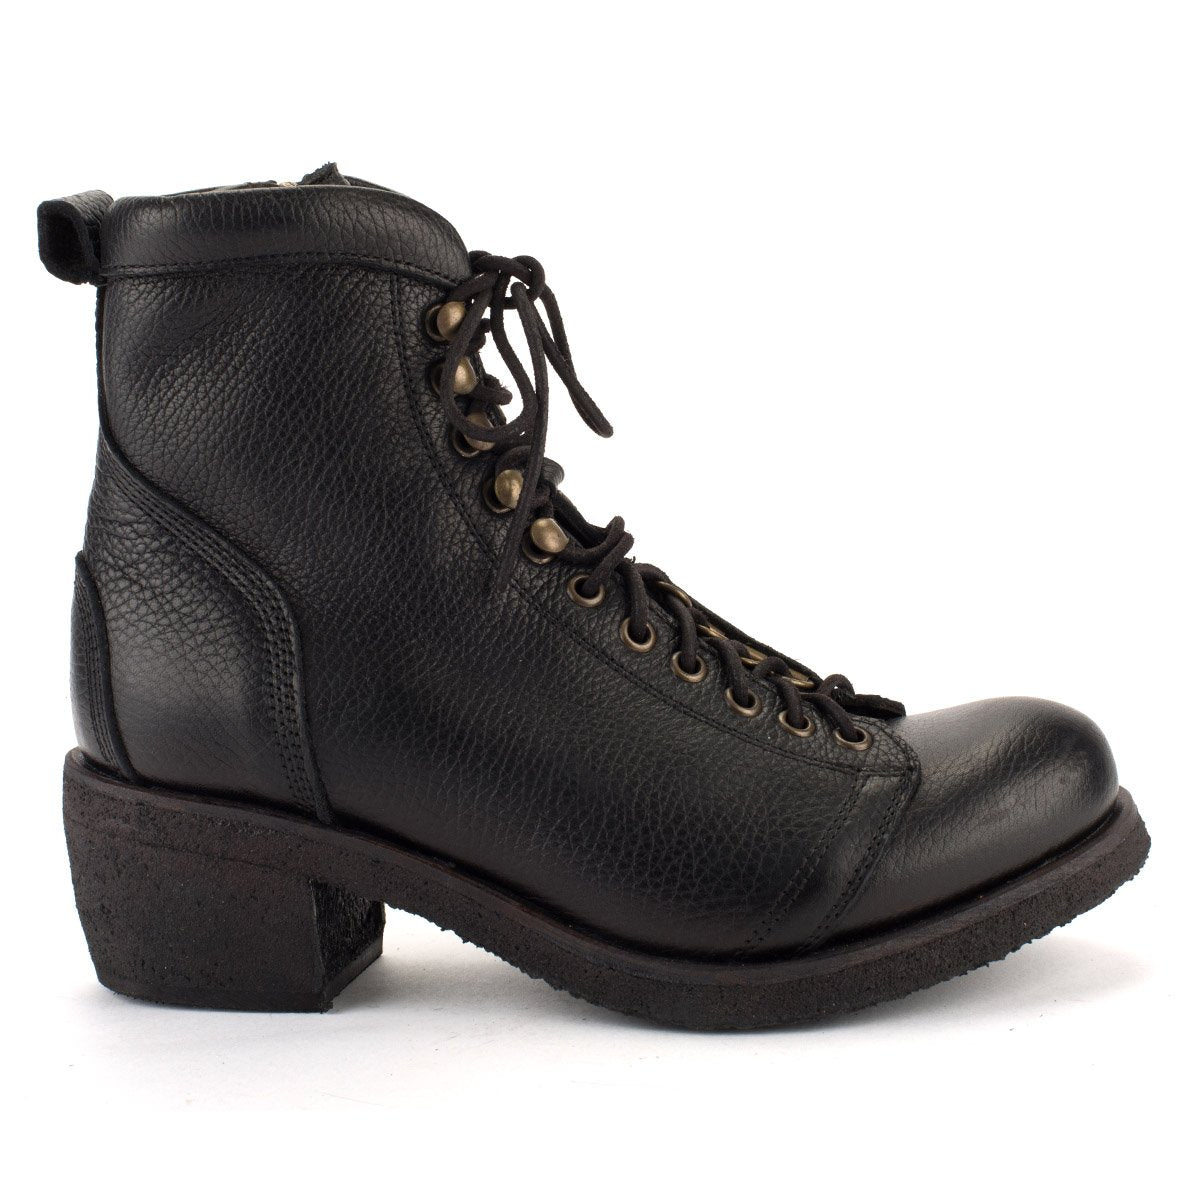 TEXAS00 ANKLE BOOTS – Black